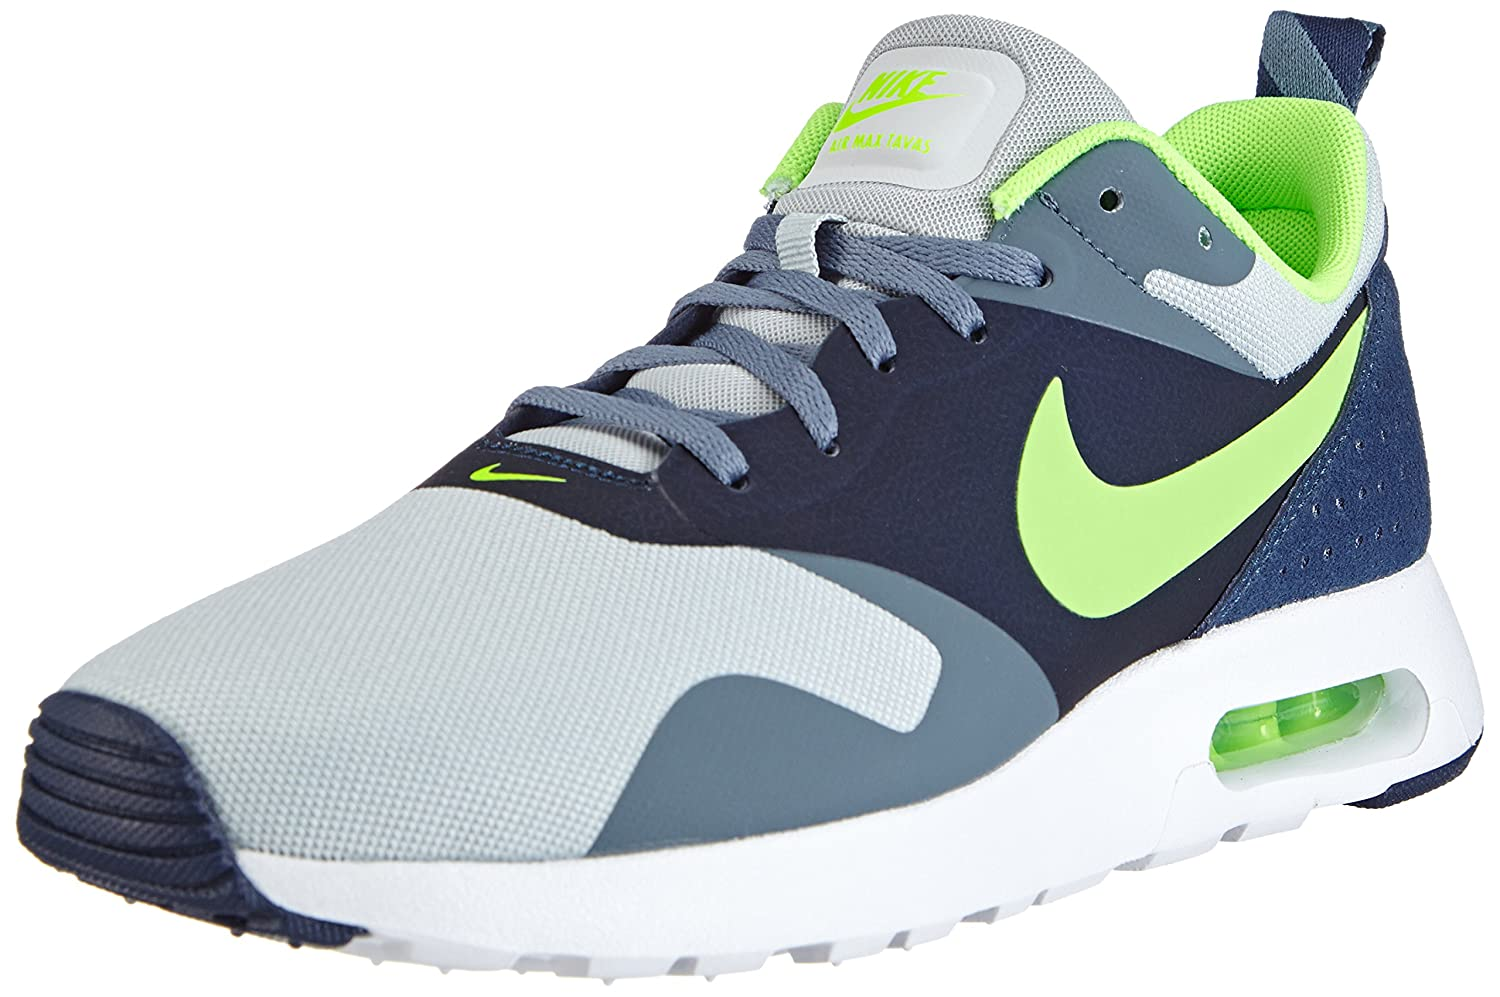 new arrival 12927 81daa Images for Nike Mens Air Max Tavas Running Shoes 705149-003 (11.5)